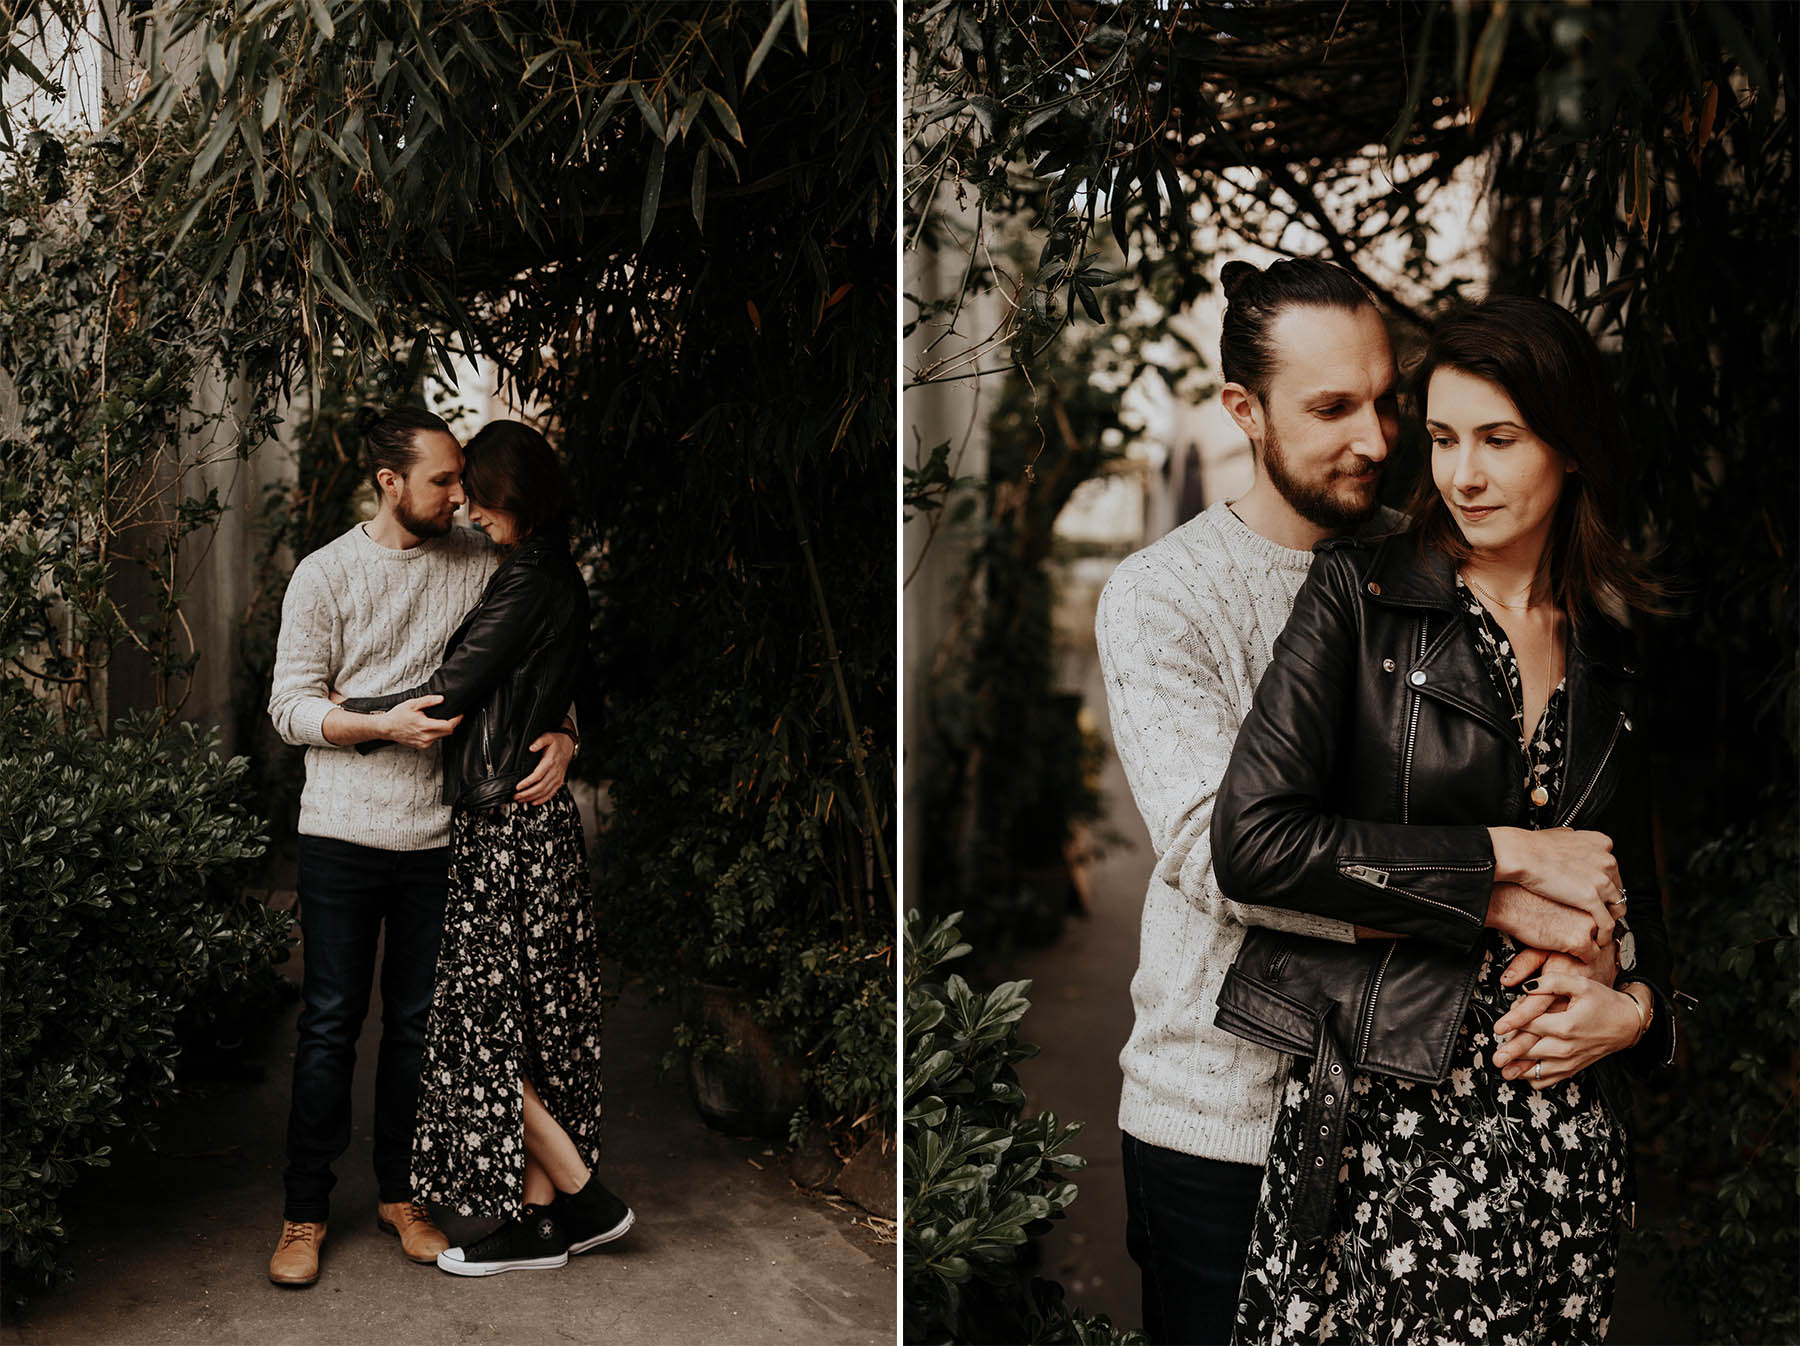 seance_engagement_trentemoult_flavie_nelly_photographe_nantes-3